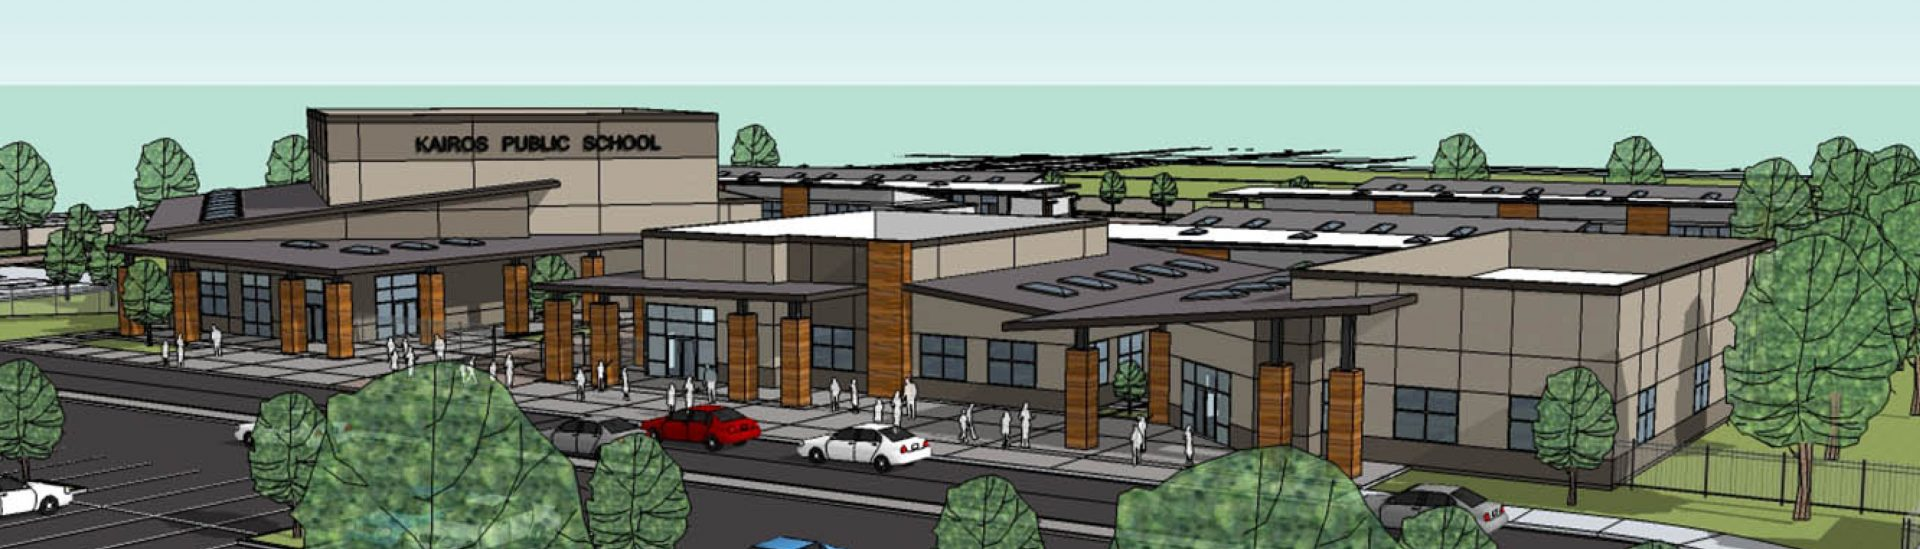 Moving Forward with Kairos Public School Expansion